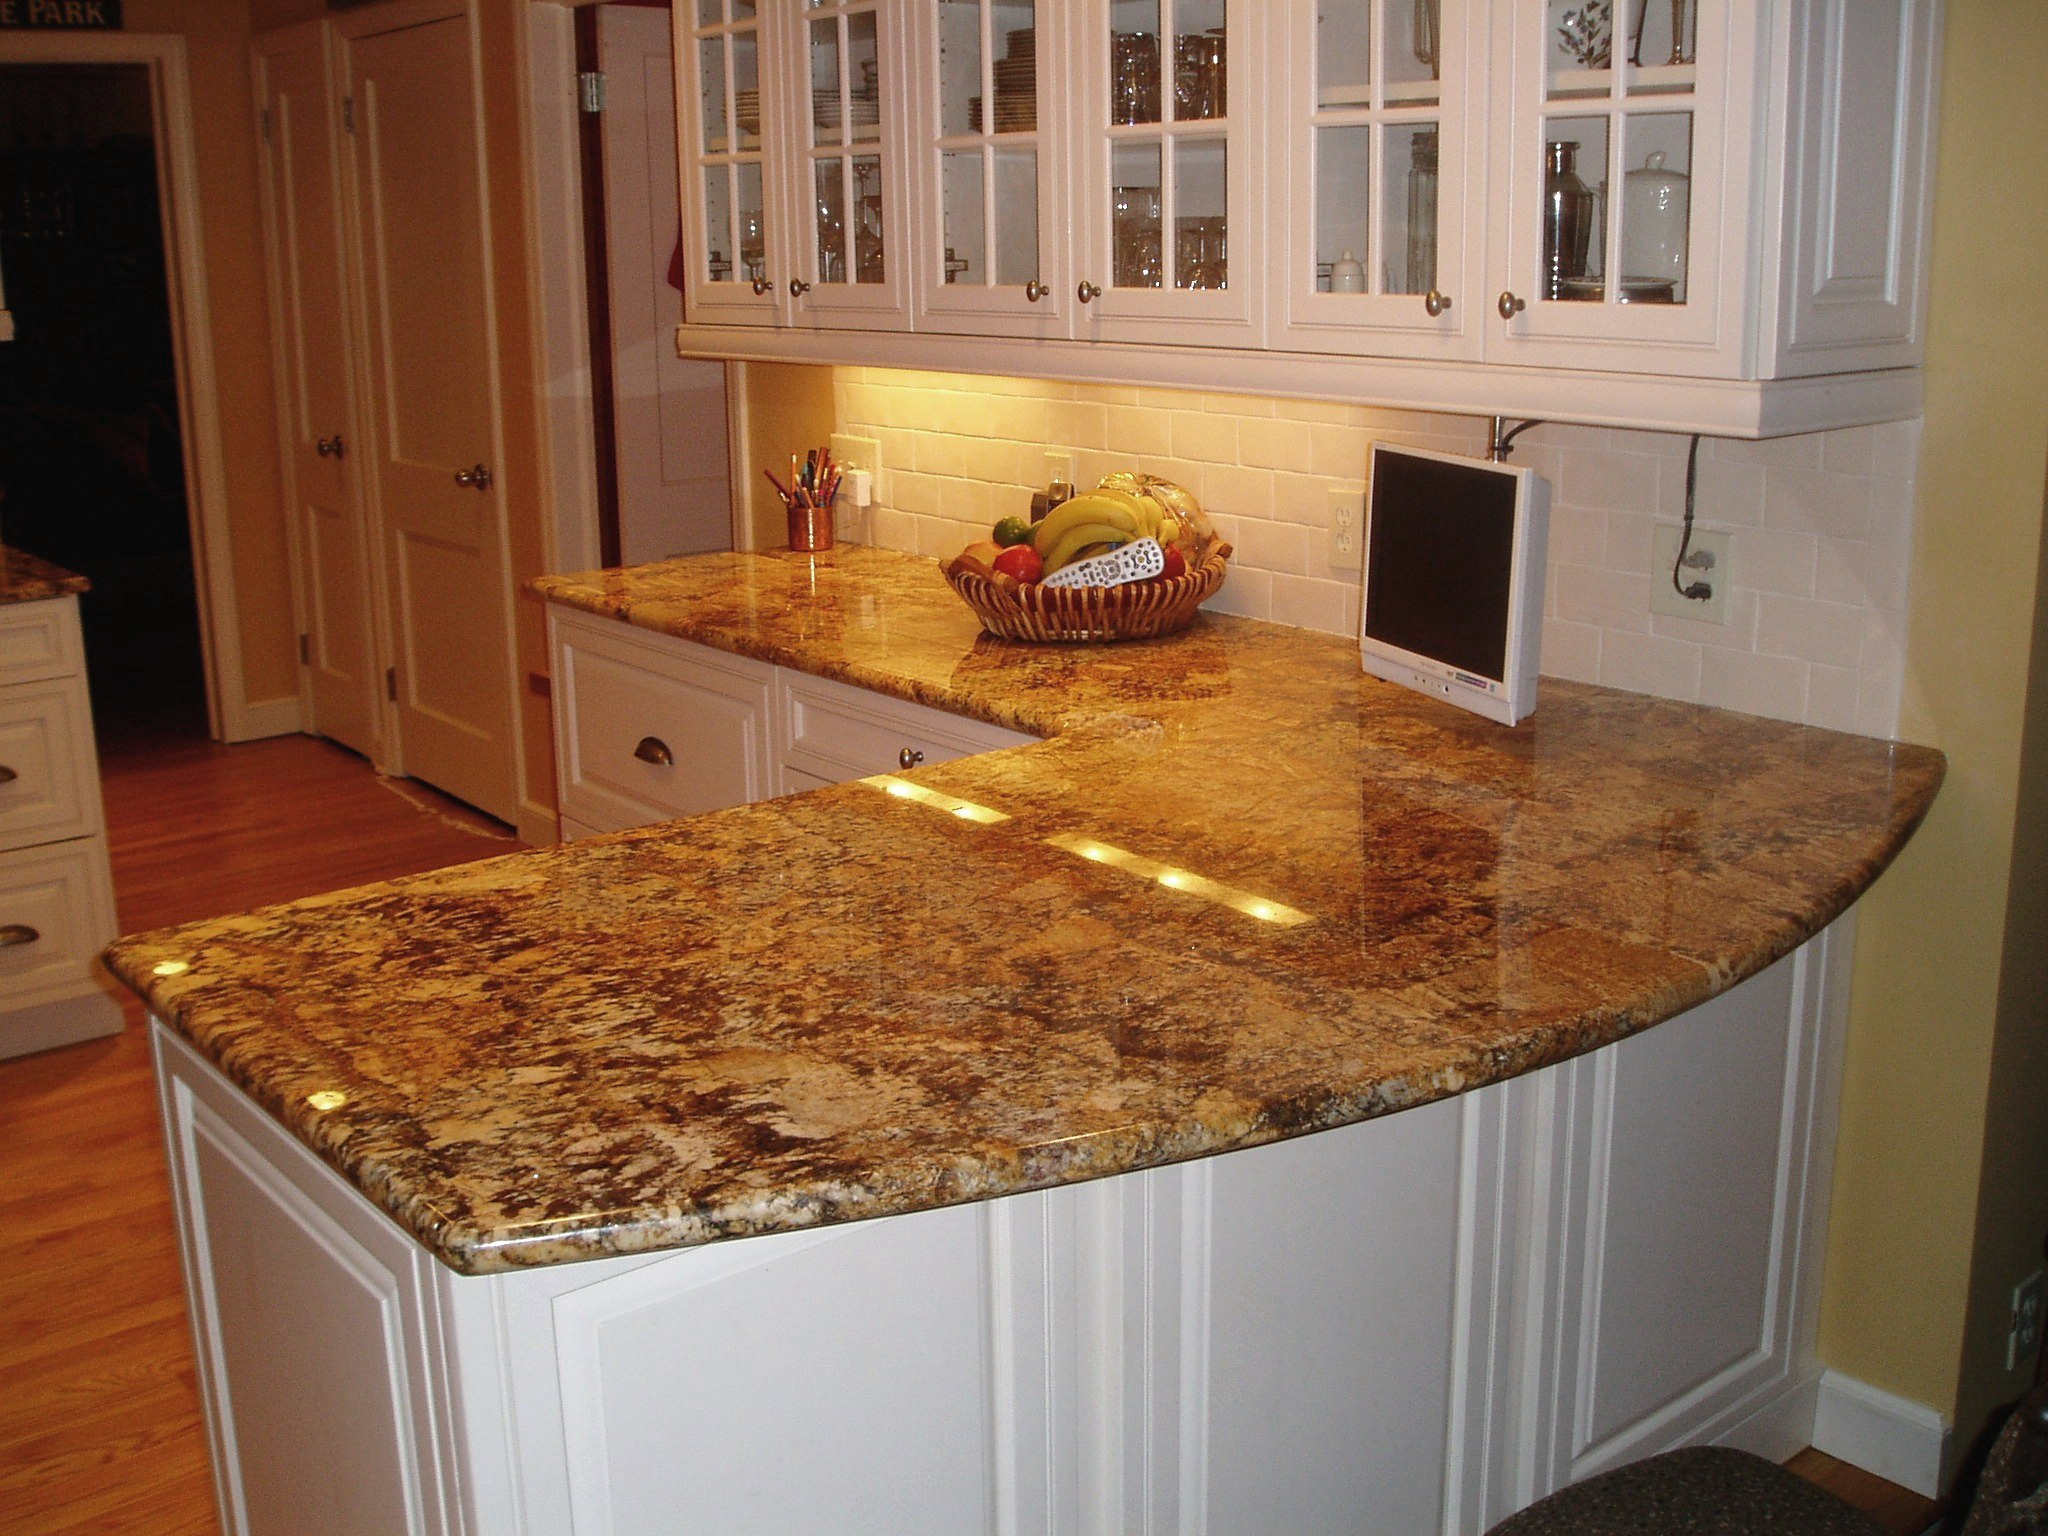 Best Price For Countertops Solutions To Overcome High Price Of Granite Countertops